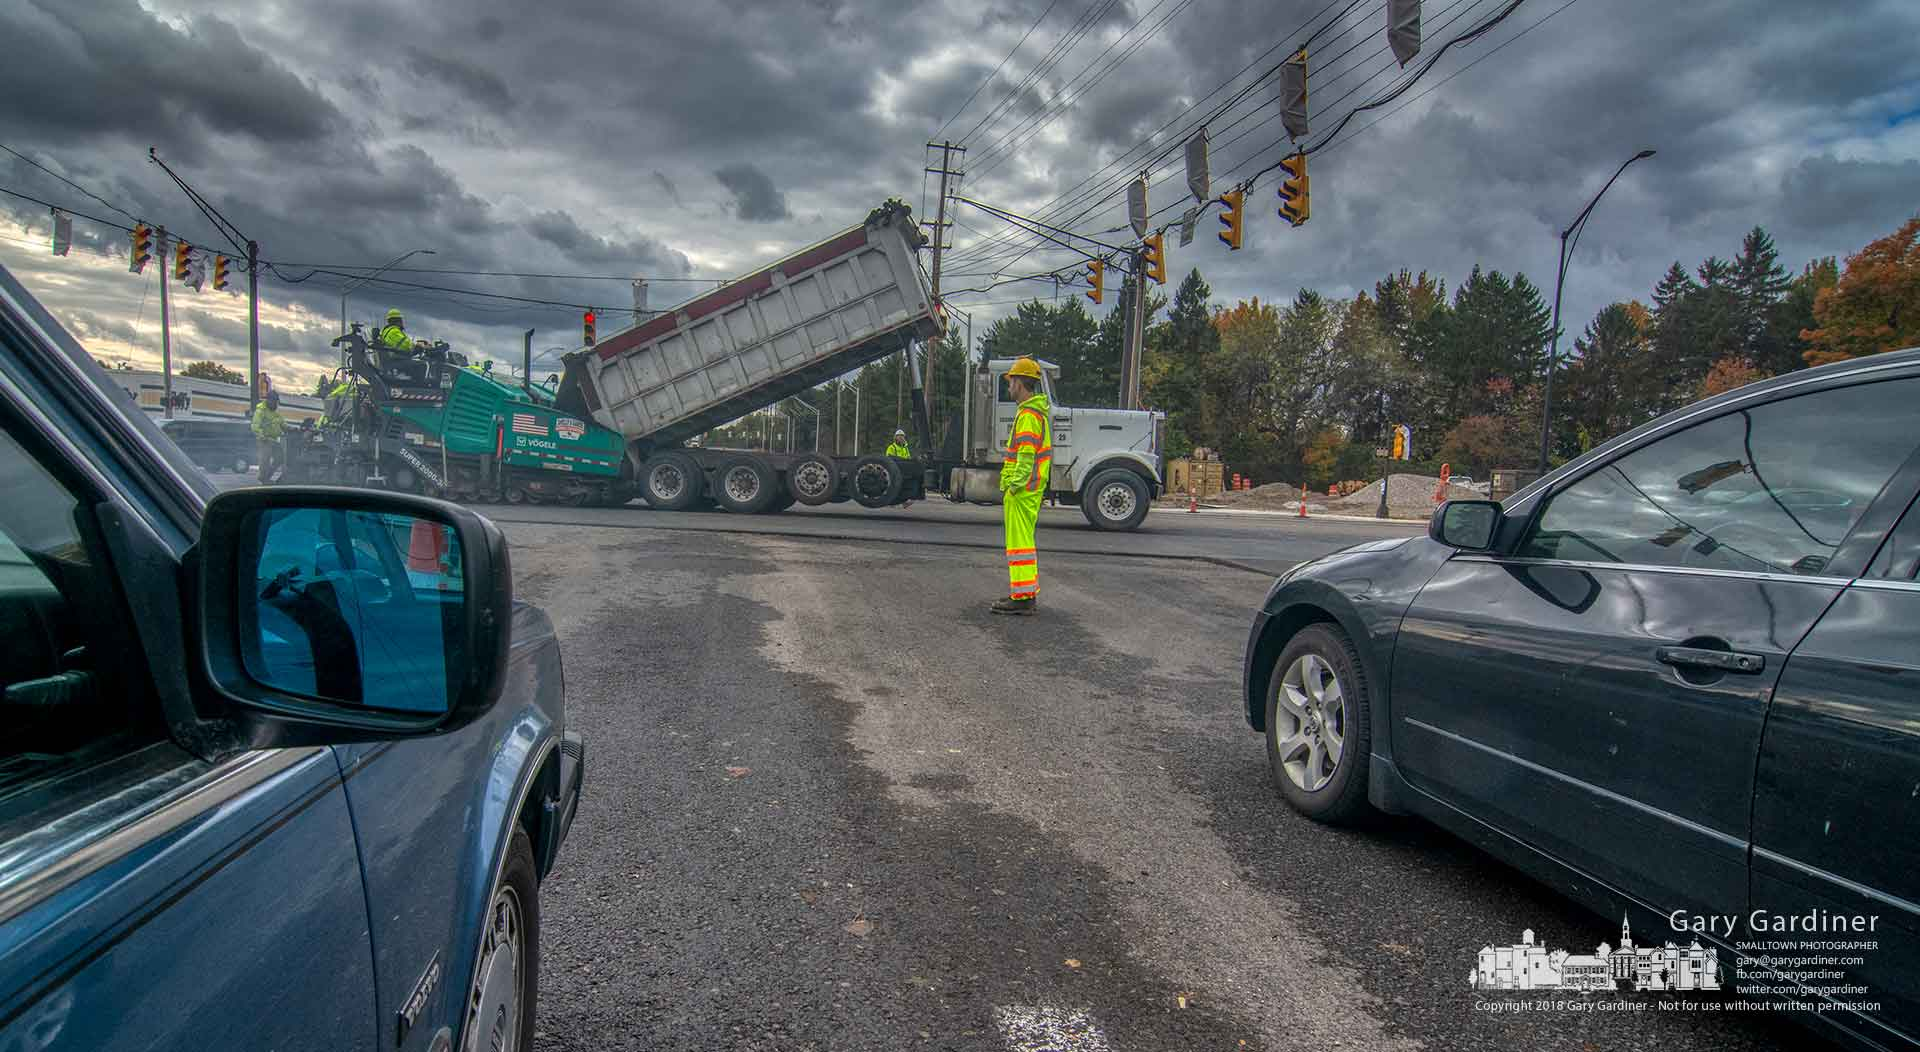 Traffic sits stopped as a road drew lays asphalt in the intersection of Schrock Road and Cleveland Avenue after a delay during the weekend because of the weather. My Final Photo for Oct. 29, 2019.